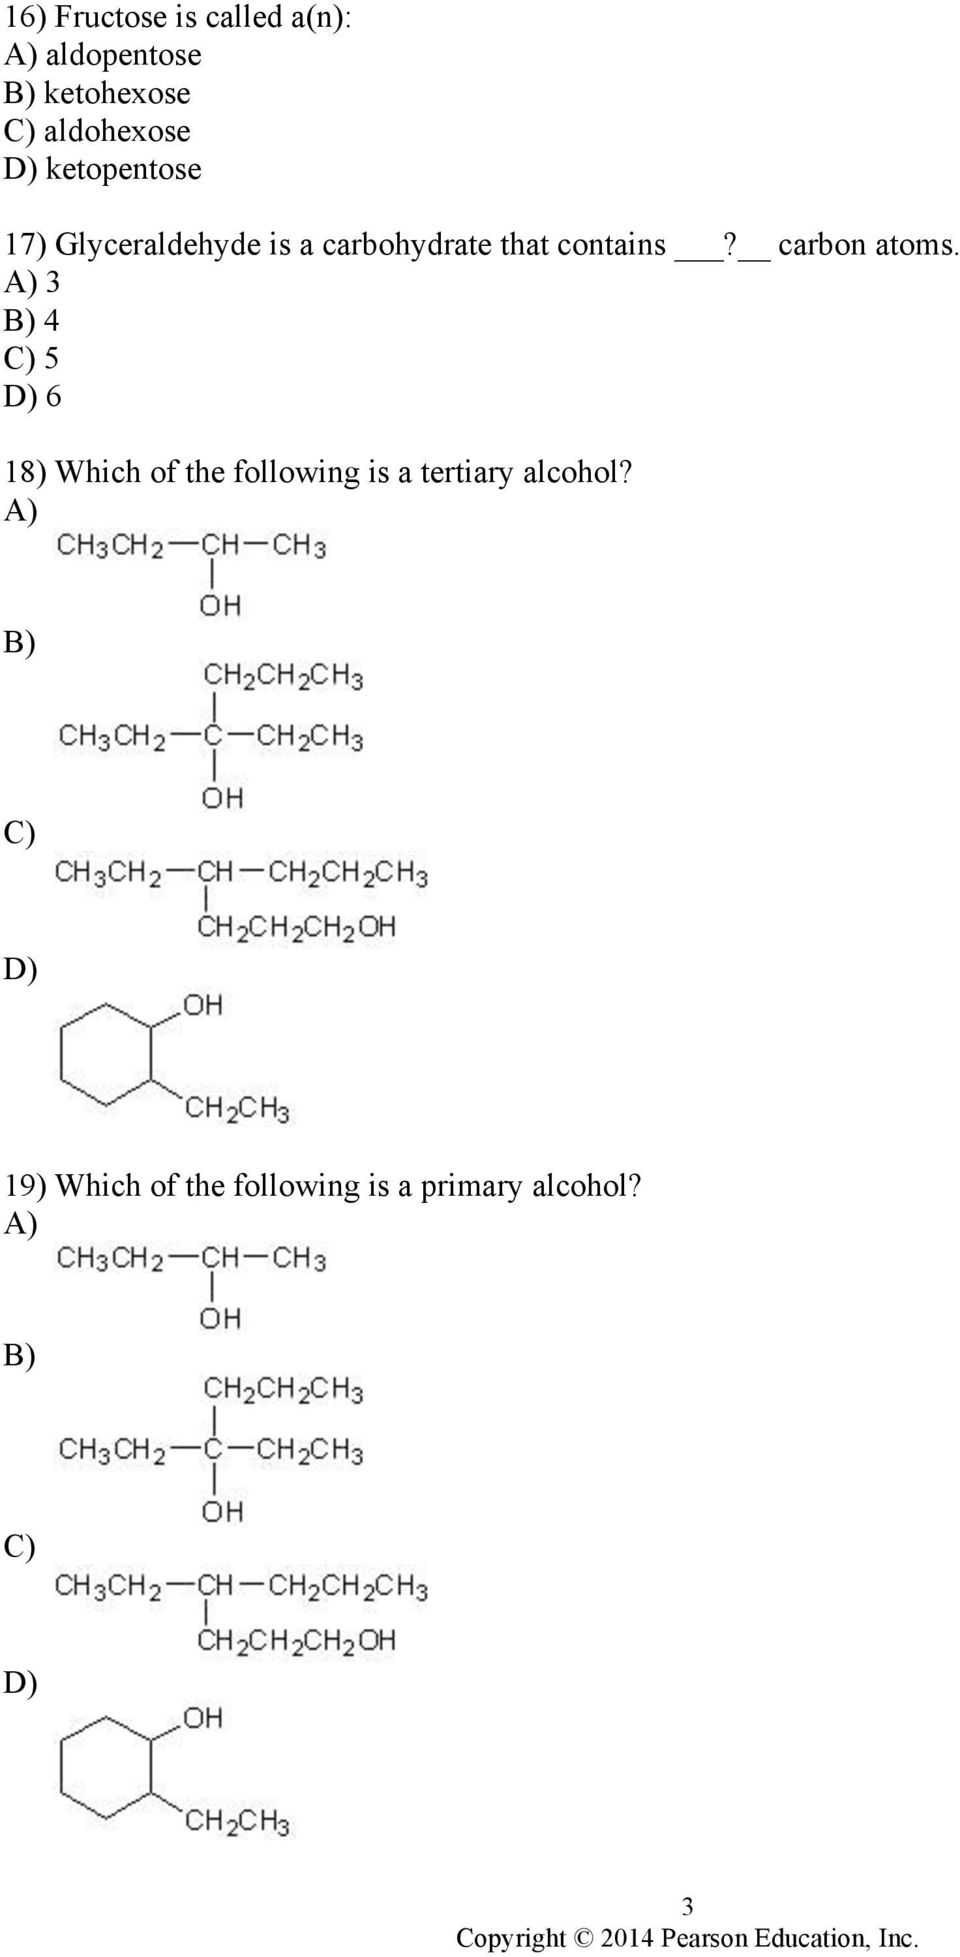 3 How Many Monosaccharides Are Connected To Each Other In A